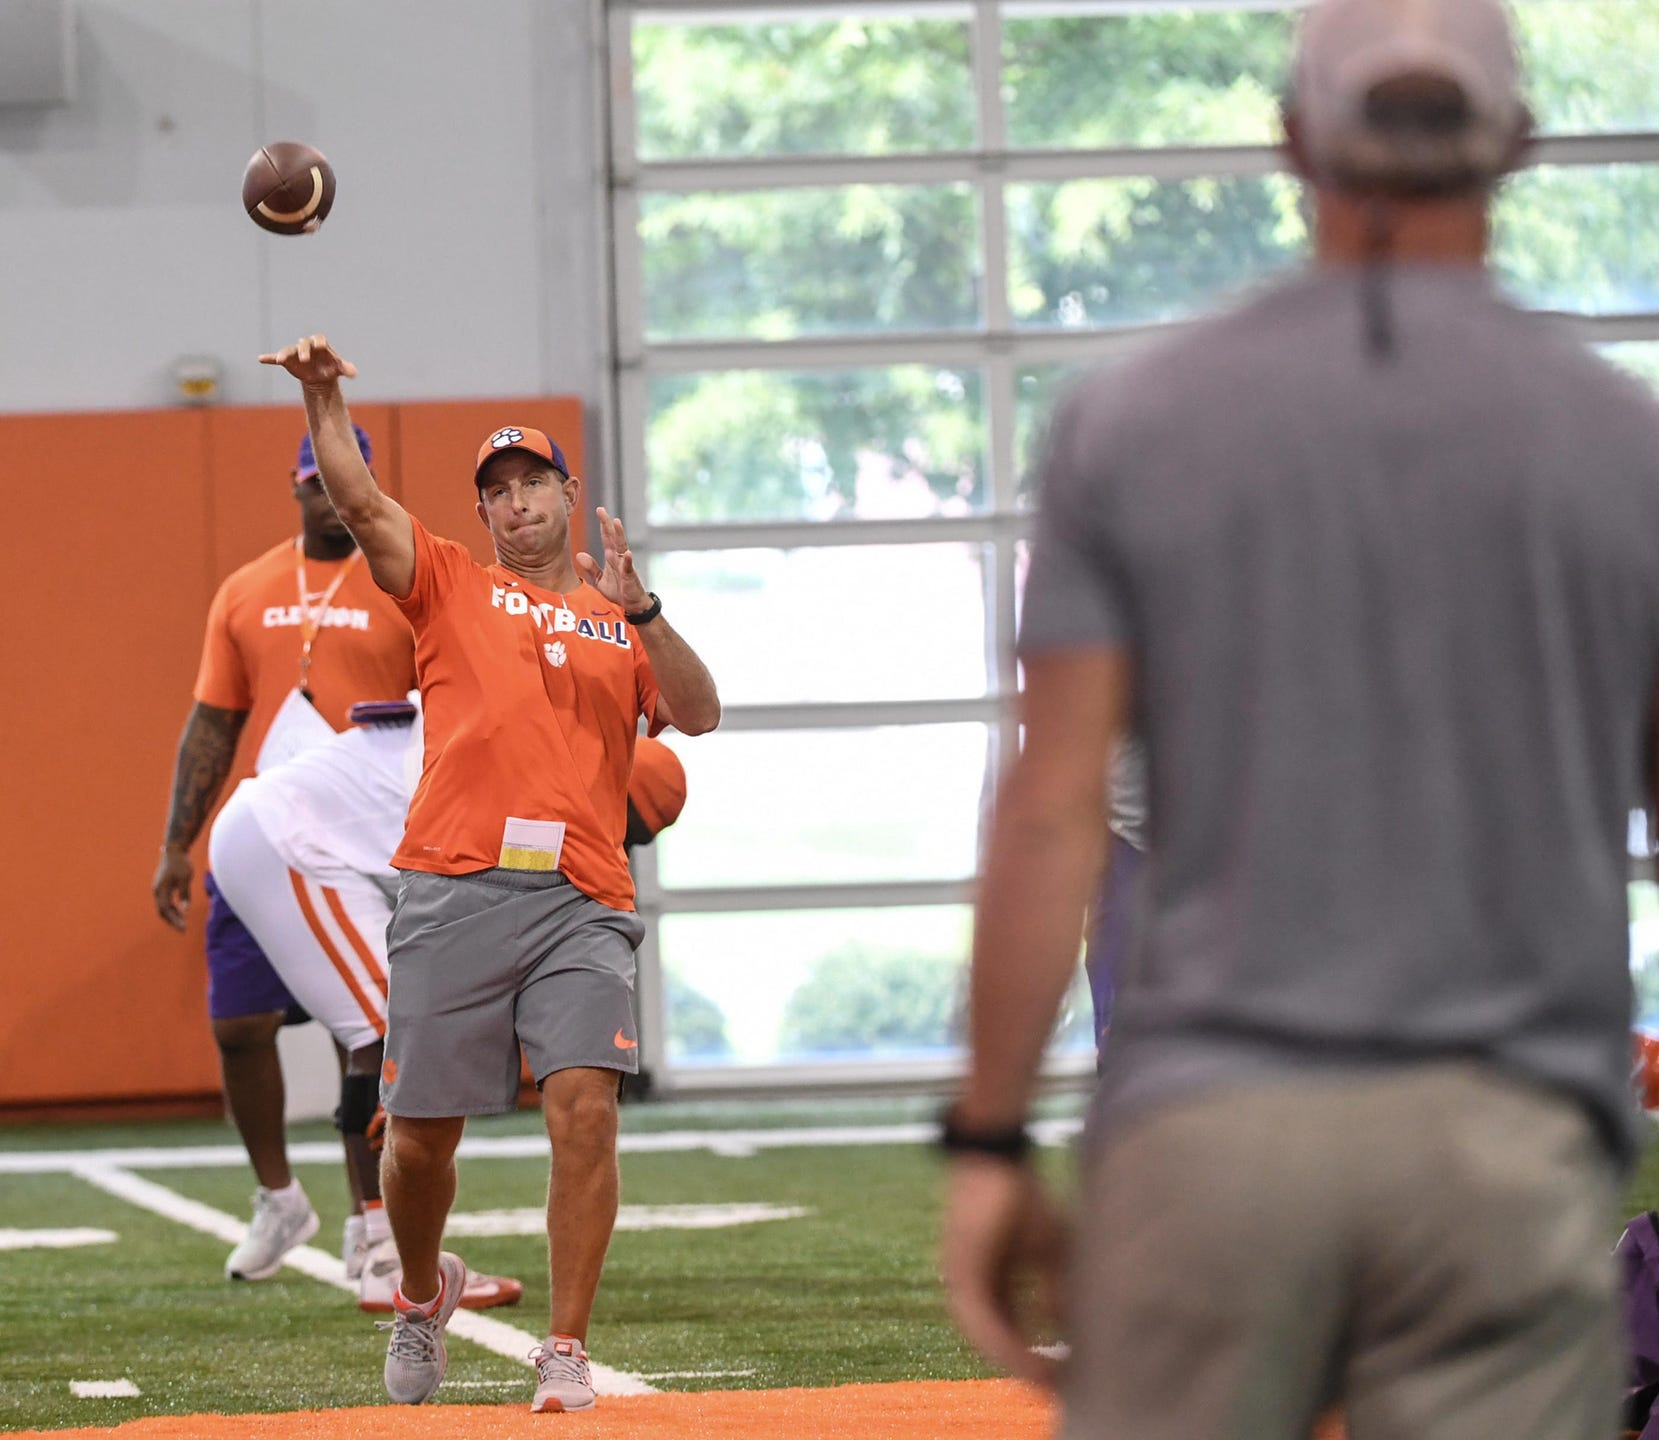 online store bbd5c 65477 Clemson football practice with corn hole and Brett Favre